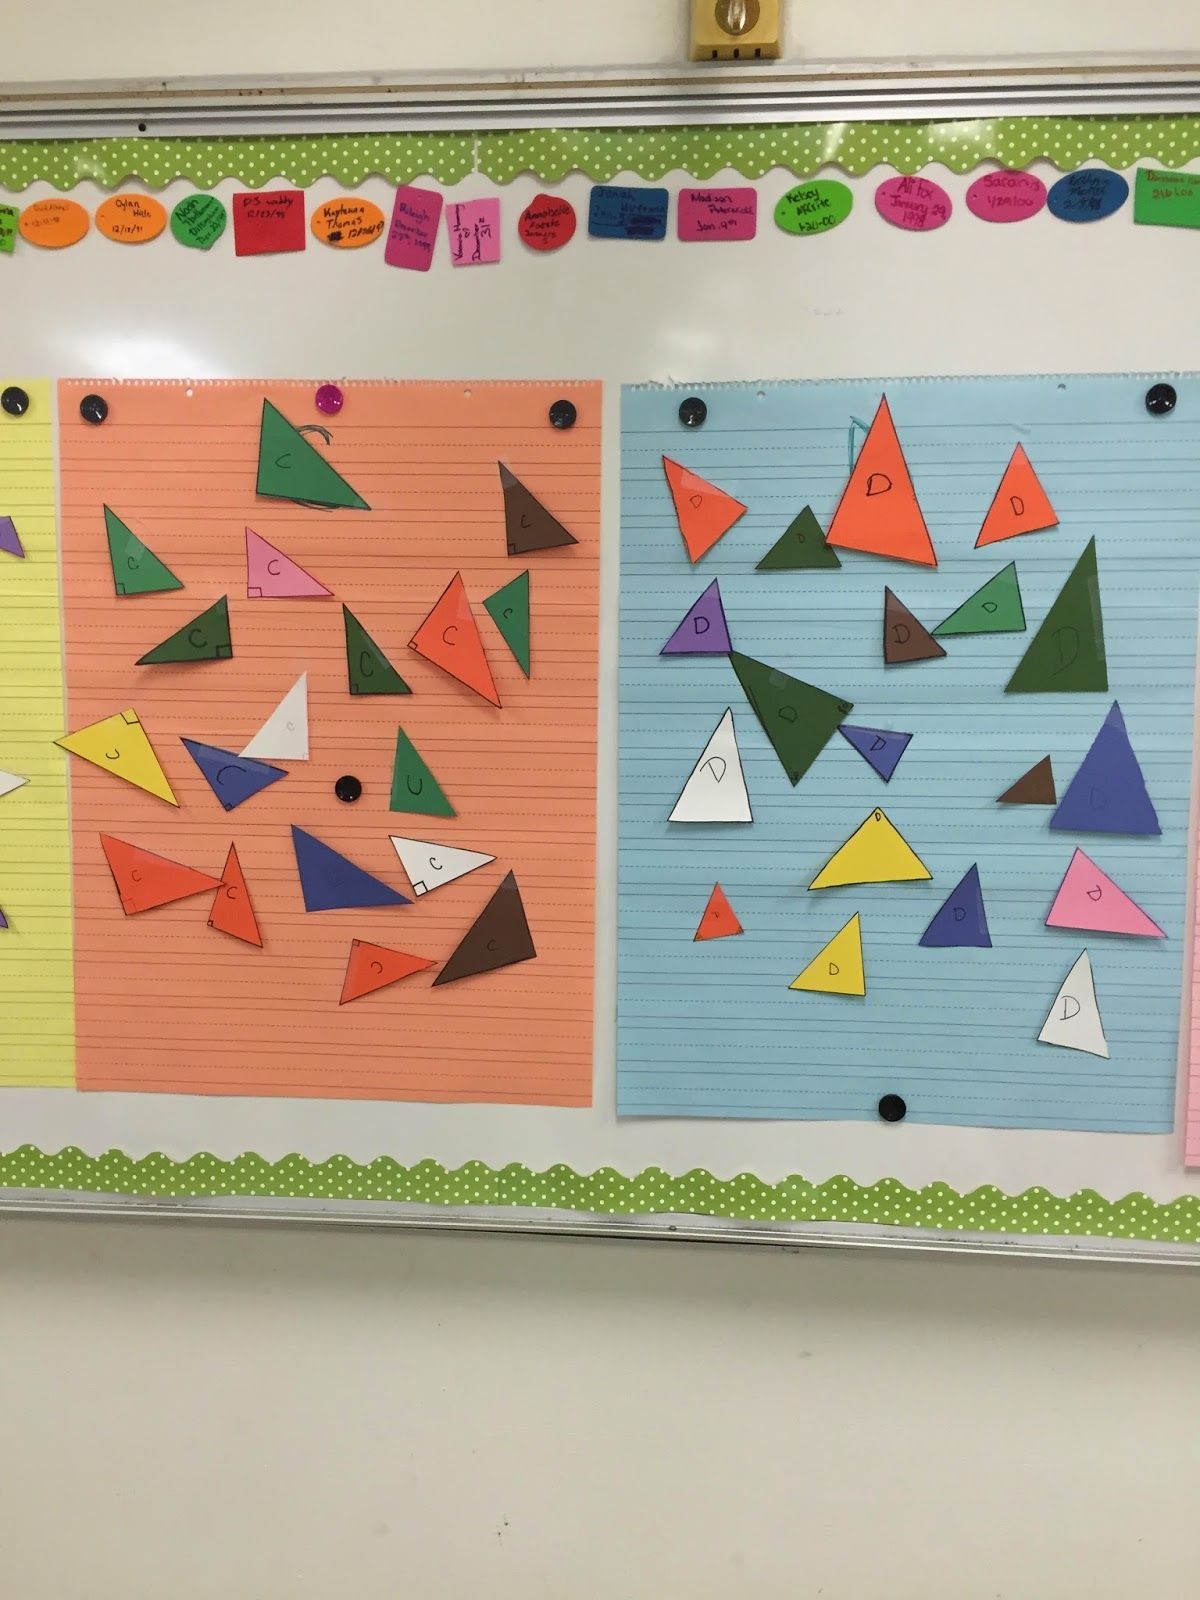 Kelsoe Math Triangles Writing Congruence Statements